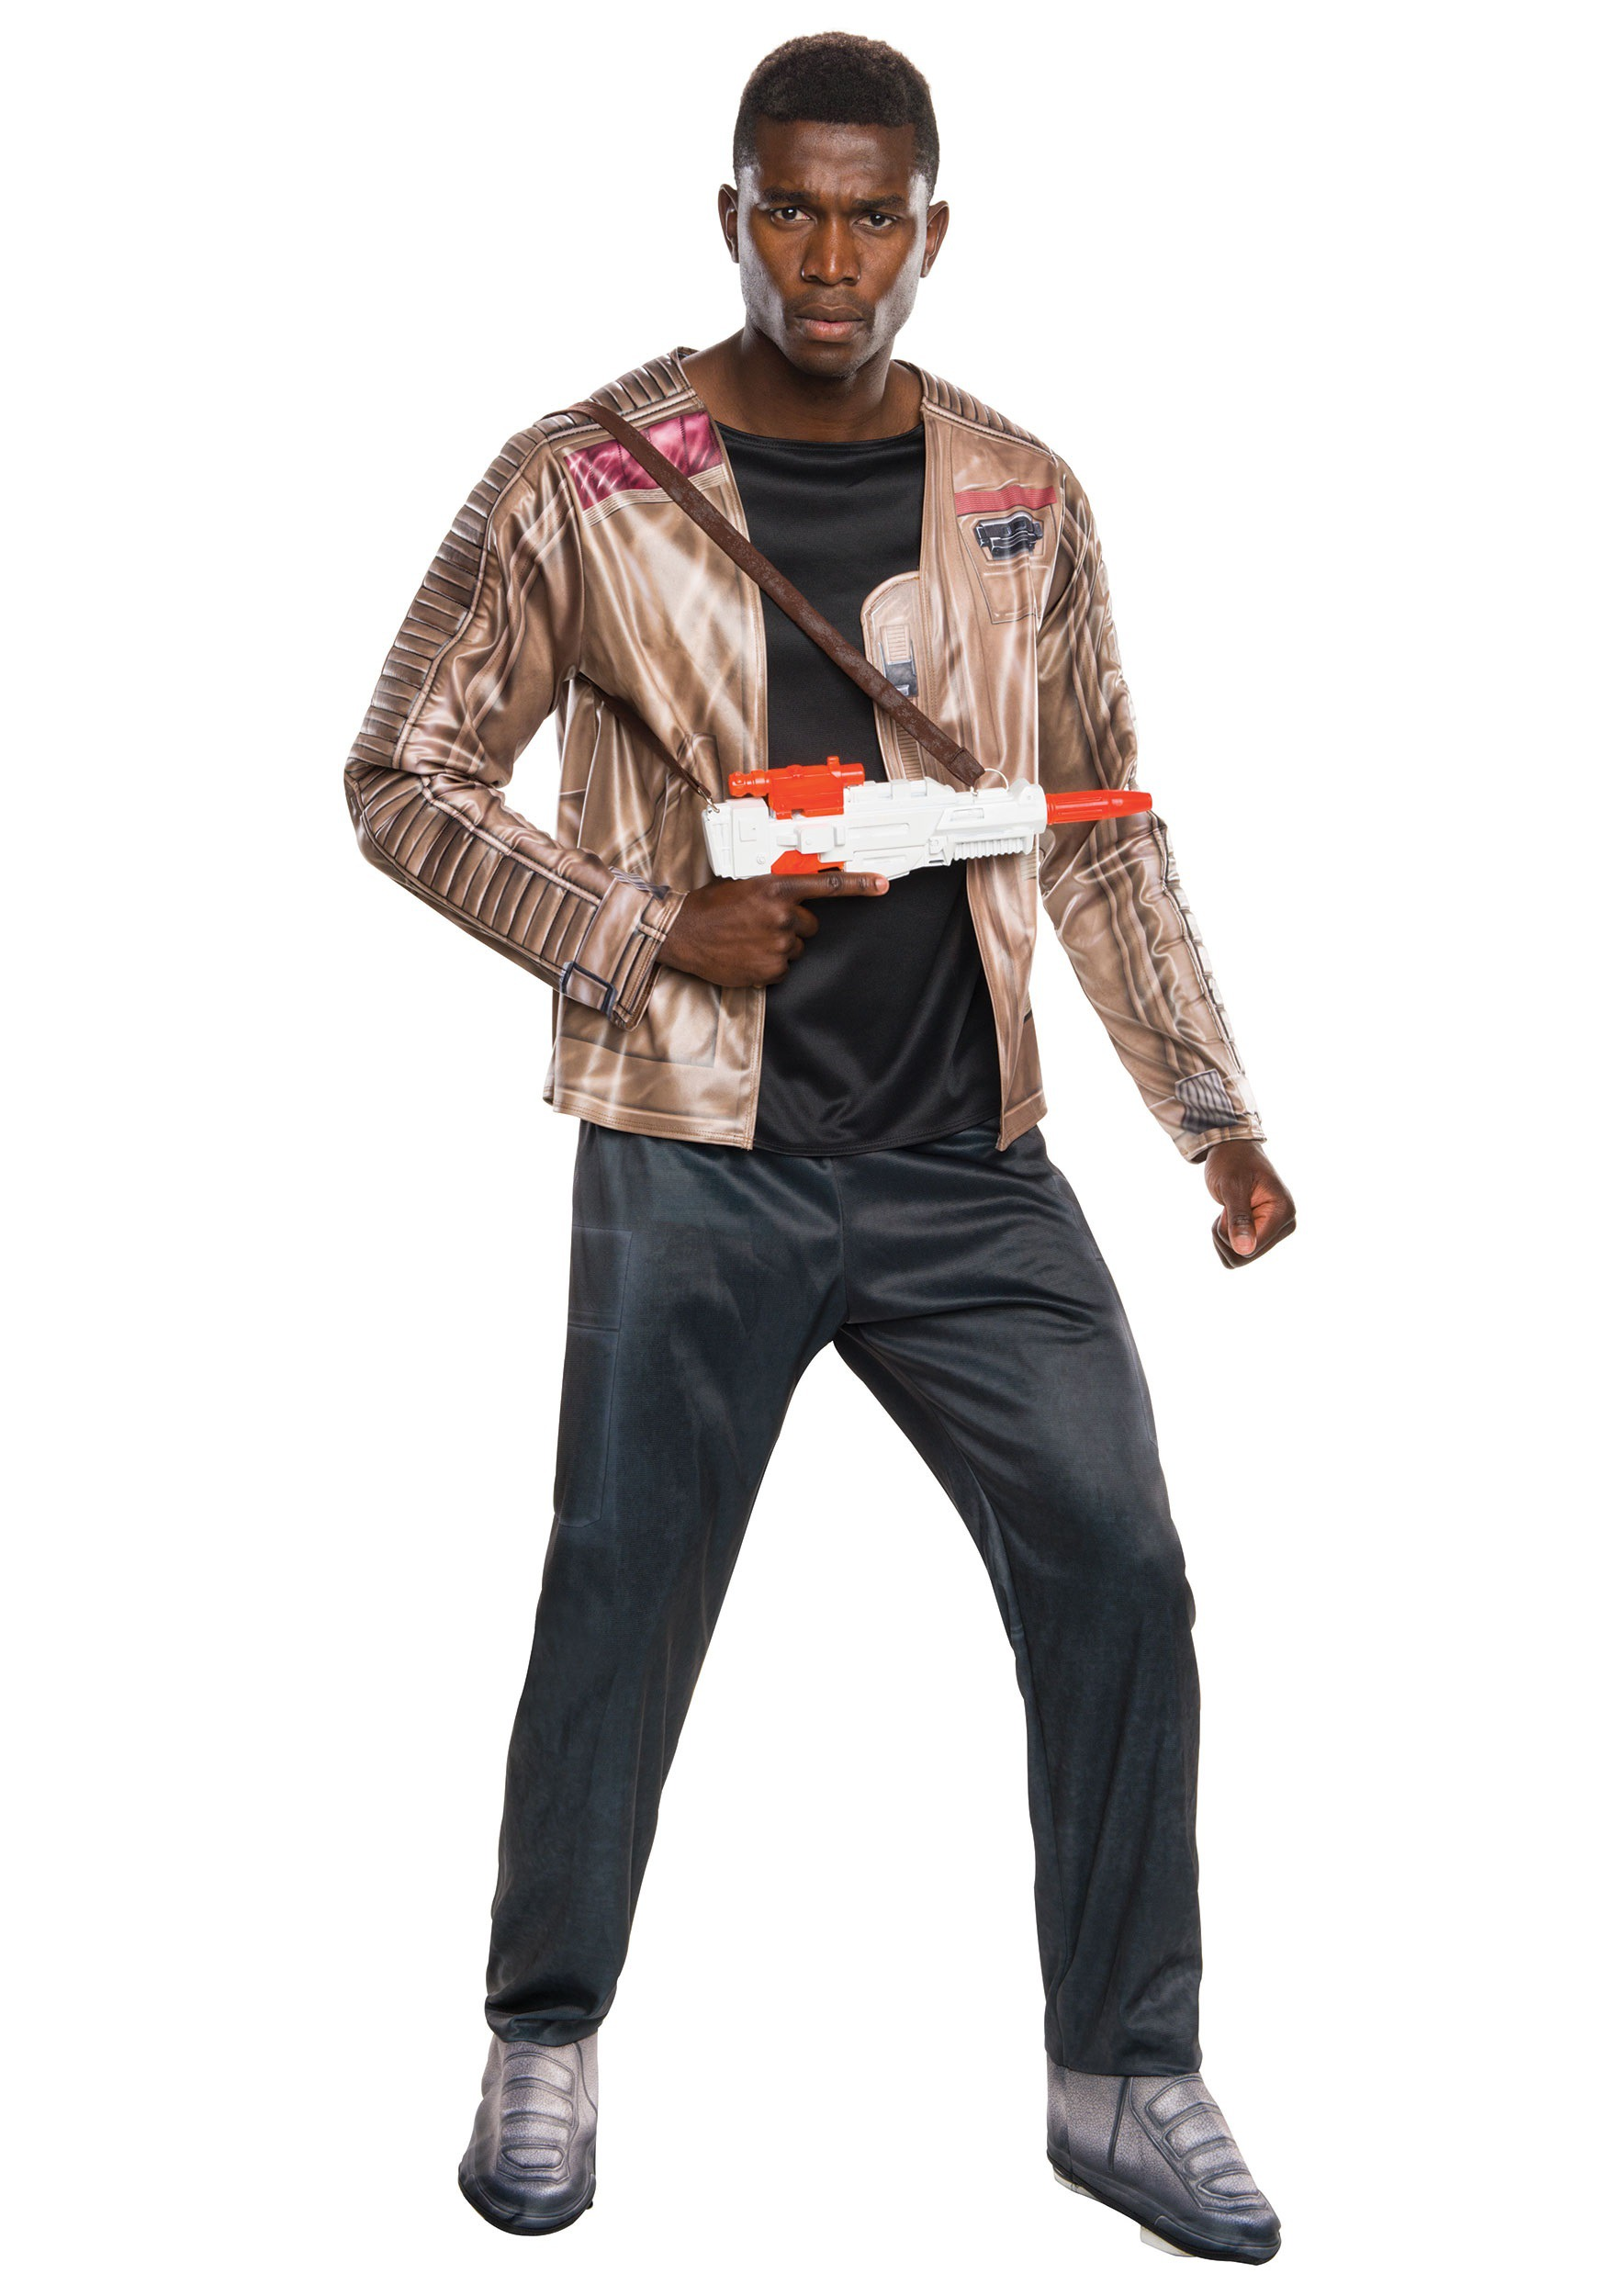 Deluxe Star Wars The Force Awakens Finn Costume RU810673